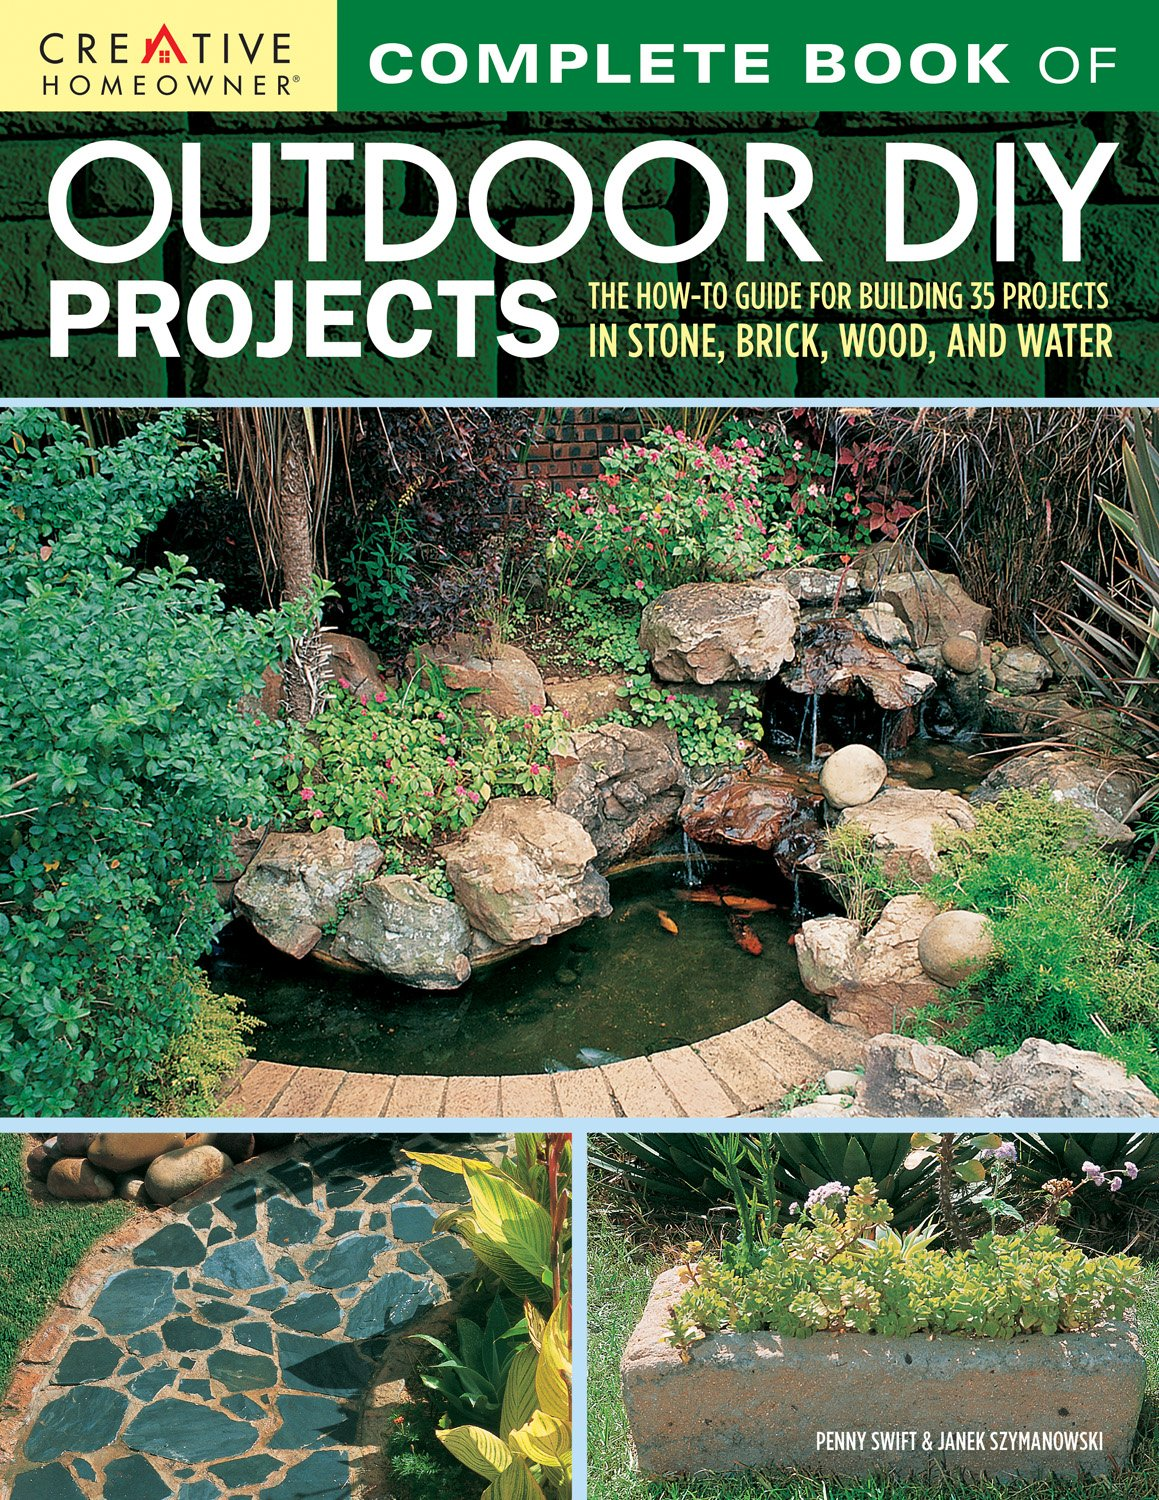 Complete Book Of Outdoor Diy Projects The How To Guide For